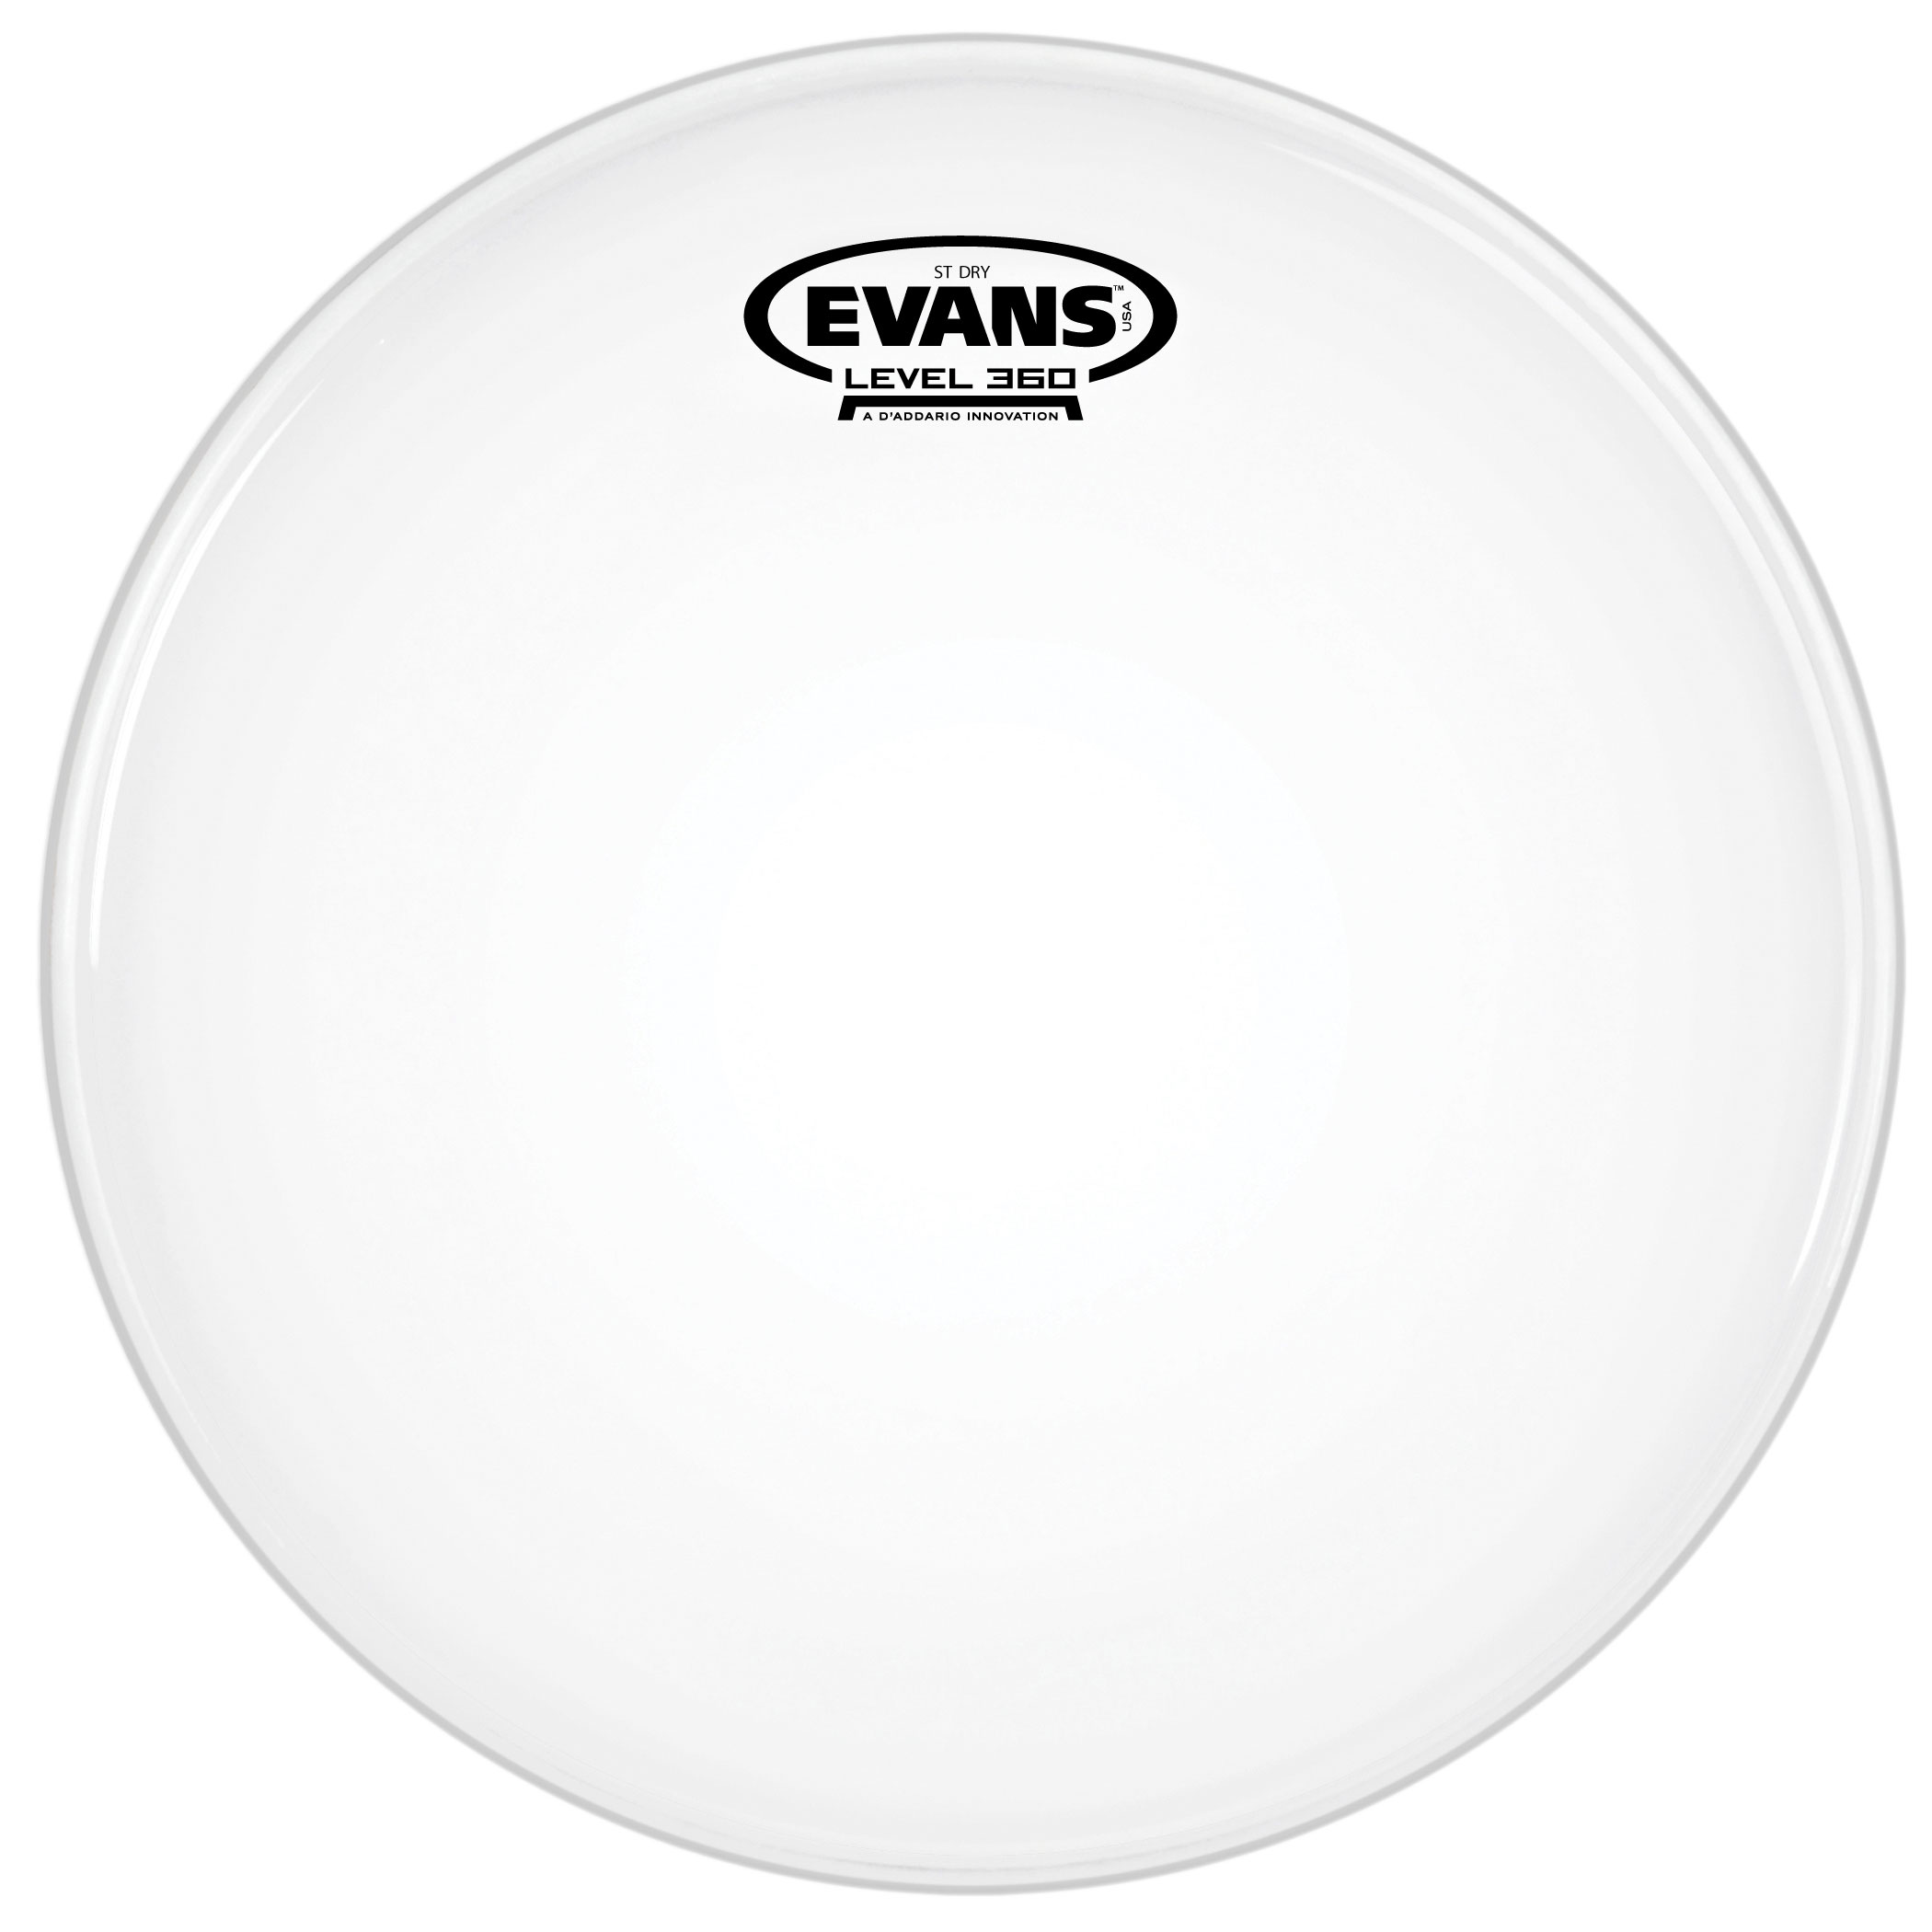 "Evans 13"" ST Dry Snare Top Head"